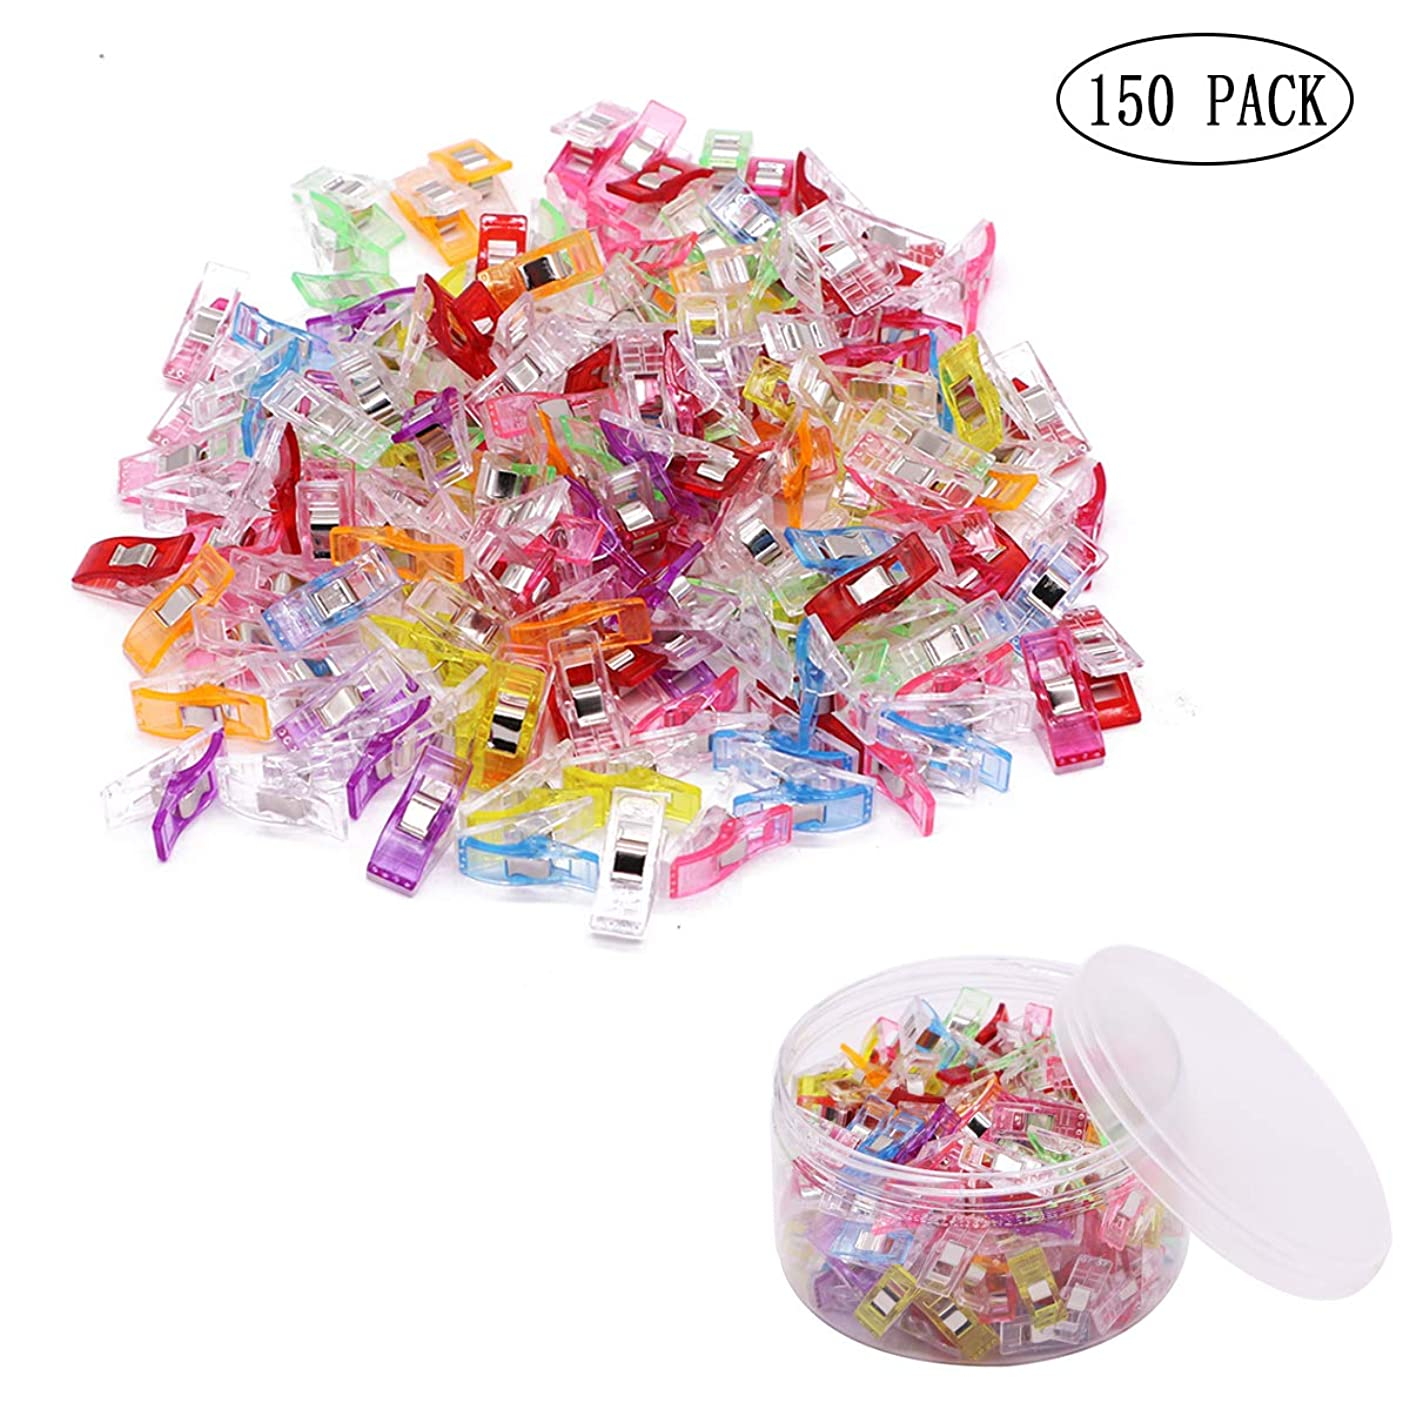 Pack of 150 Pcs Multipurpose Sewing Clips, All Purpose Craft Clips Quilting Clips for DIY Crafting Blinding Crochet and Knitting Clamps - Assorted 9 Colors